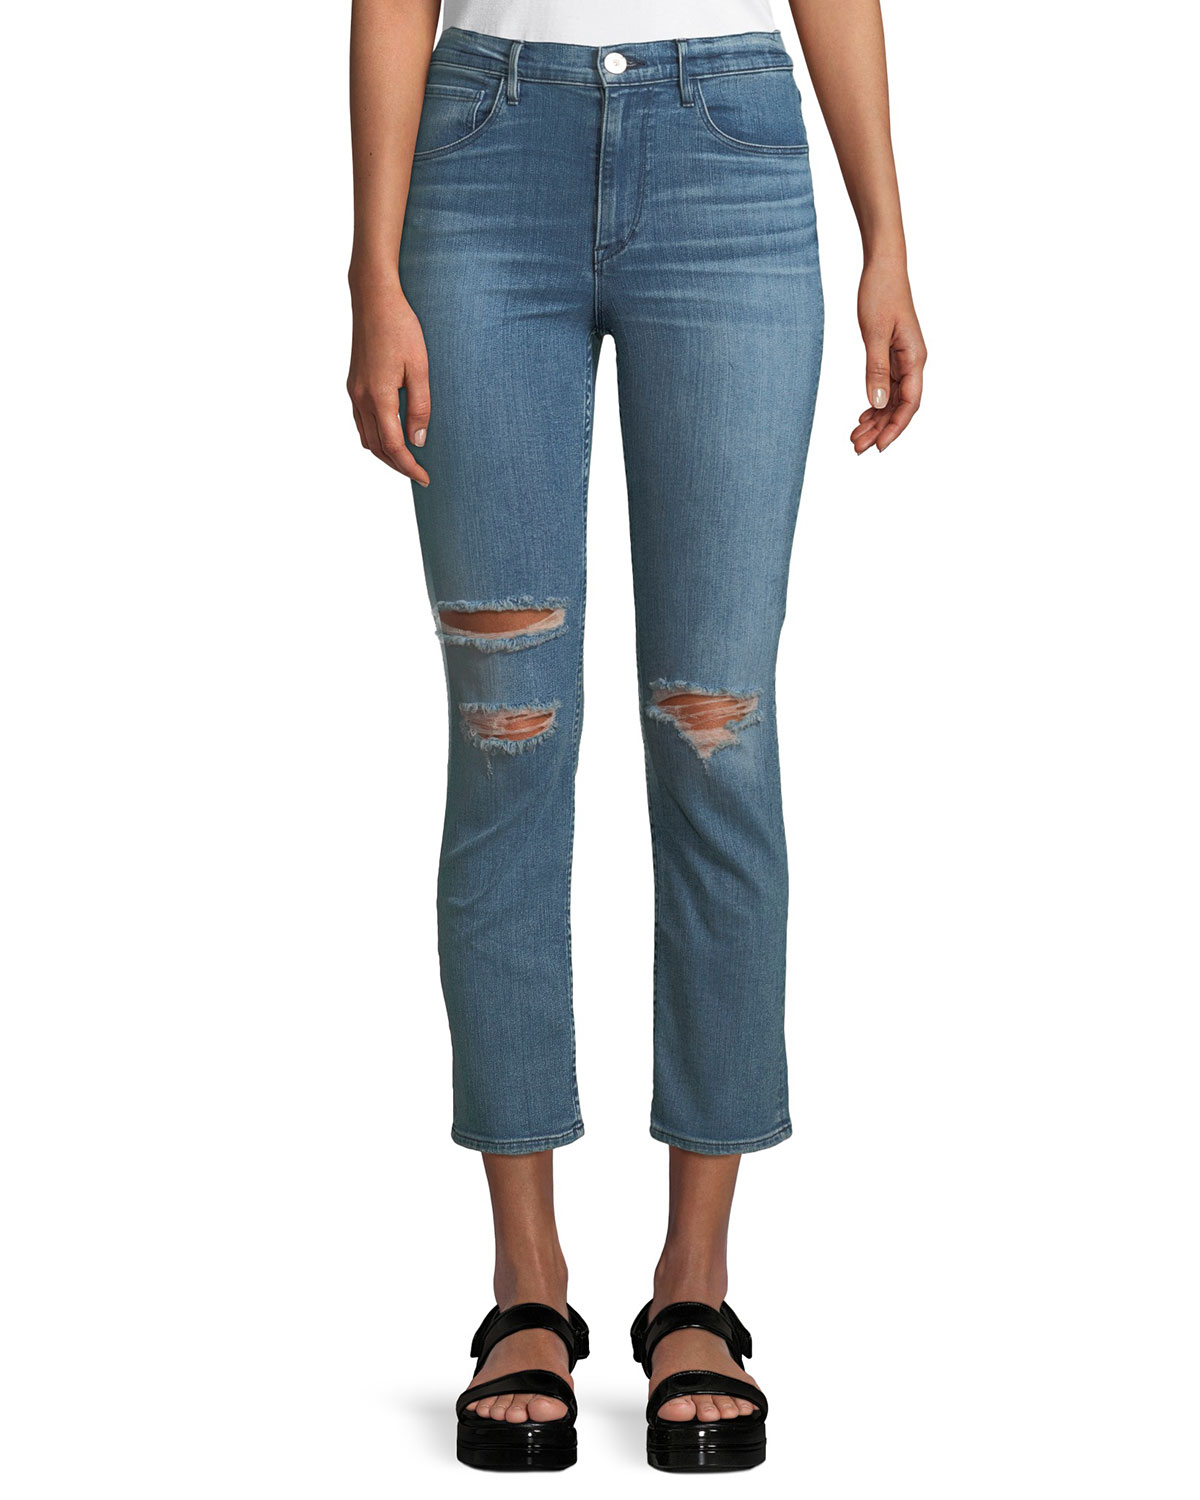 W4 Colette Distressed Straight-Leg Jeans